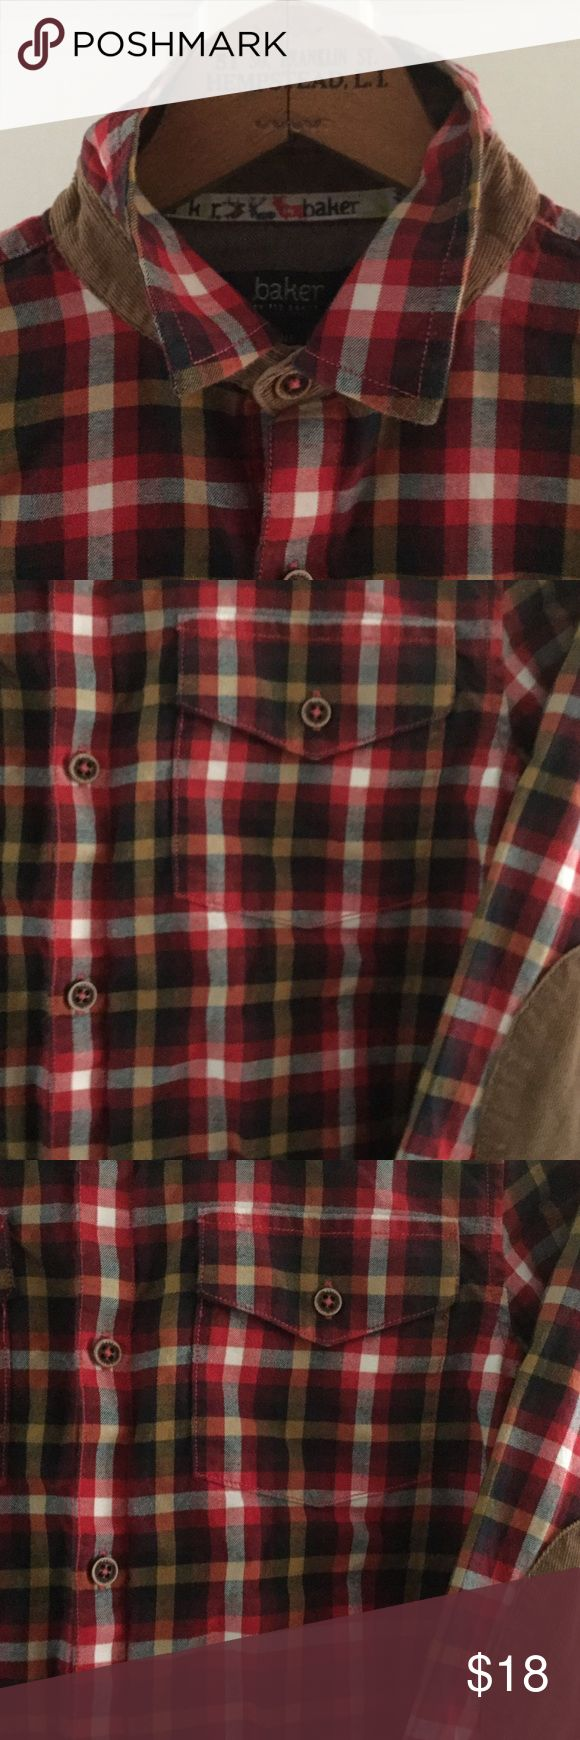 Ted Baker children's shirt. Wonderfully detailed plaid shirt with corduroy elbow patches and collar trim. Ted Baker Shirts & Tops Button Down Shirts